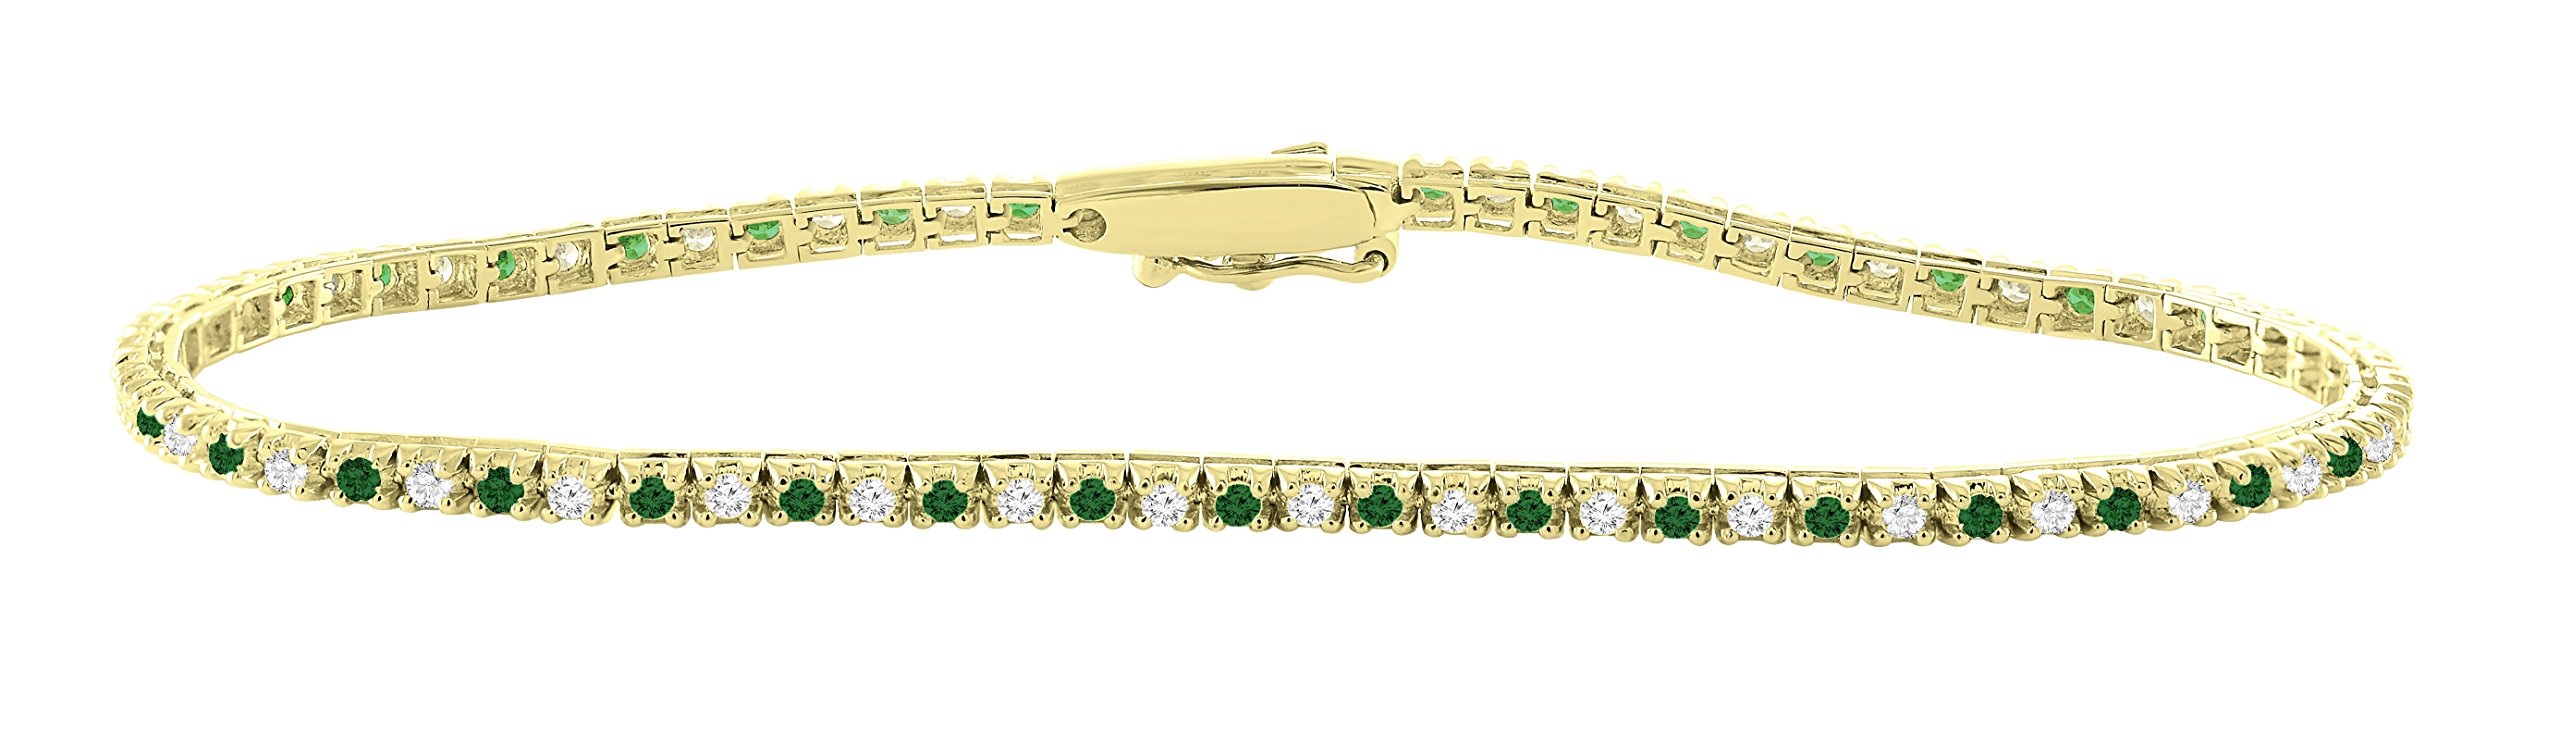 14K Yellow Gold 1.00 Carat (ctw) Real Natural White Diamond & Green Emerald Tennis Bracelet For Women 7 Inches